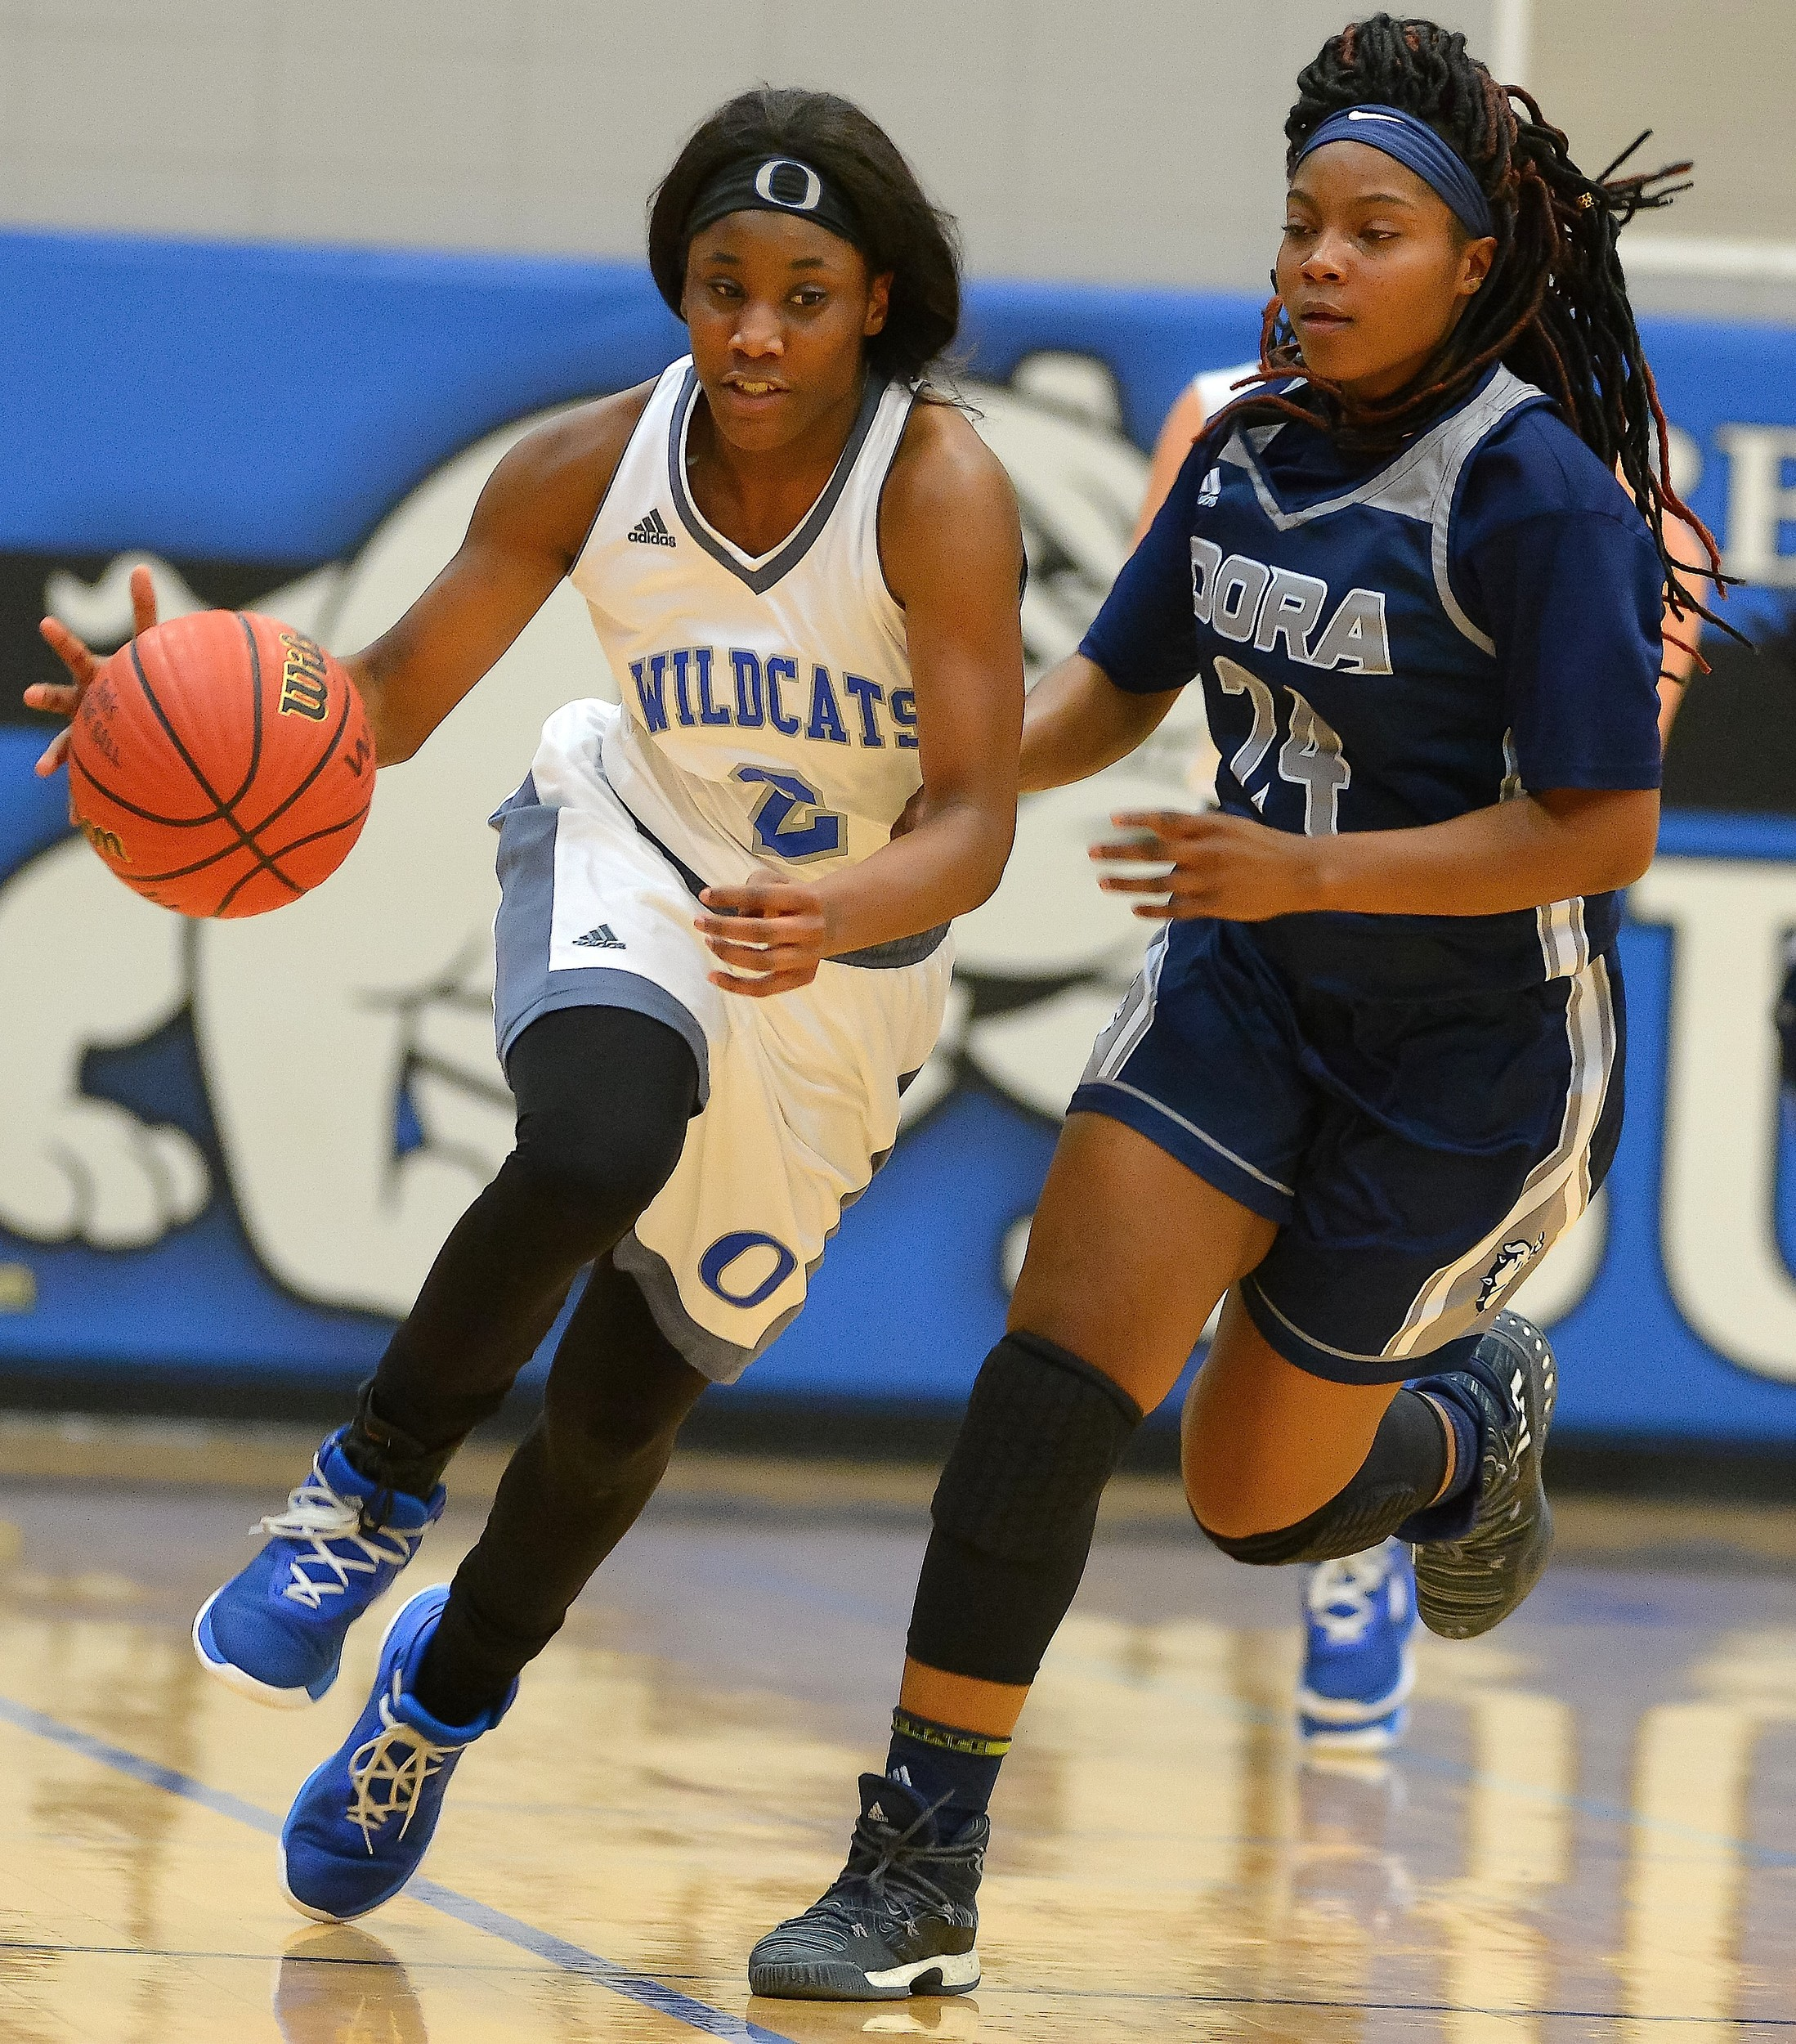 Oakman's Iyana Canada (2) brings the ball up the court as Dora's Deja Pendleton (24) defends during the championship game of the Walker County Basketball Tournament on Saturday. Oakman won 46-36 for their first county title since 2004.